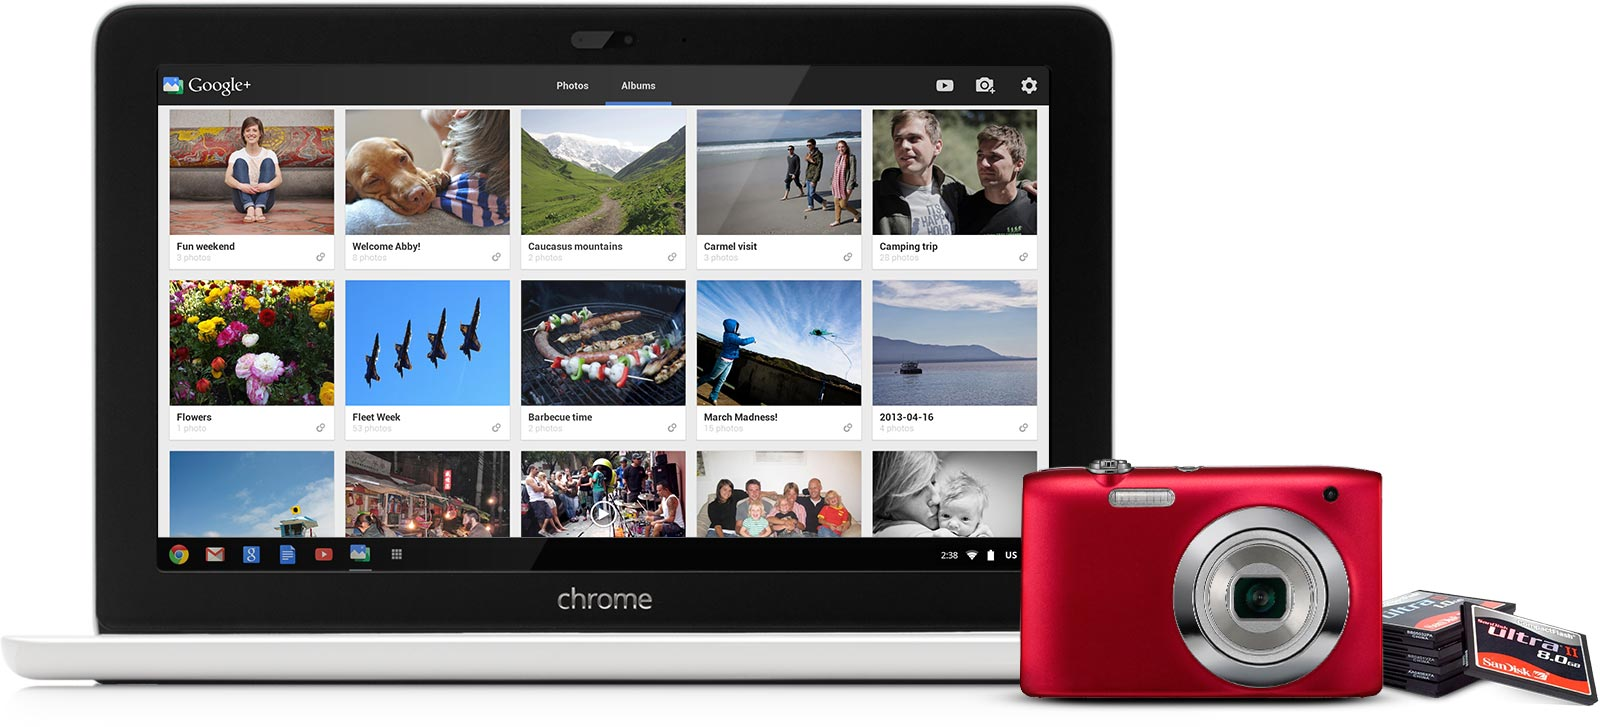 how to call a phone from chromebook free no hangouts